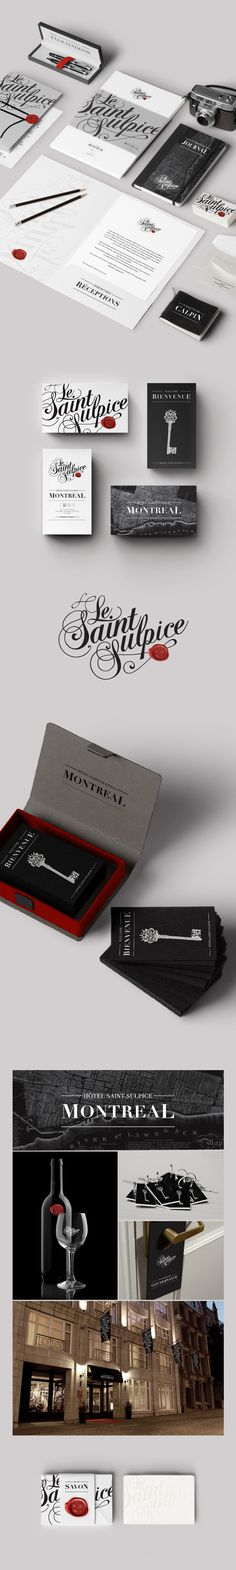 Identity / Saint-Sulpice Hotel Montreal by Carolane Godbout